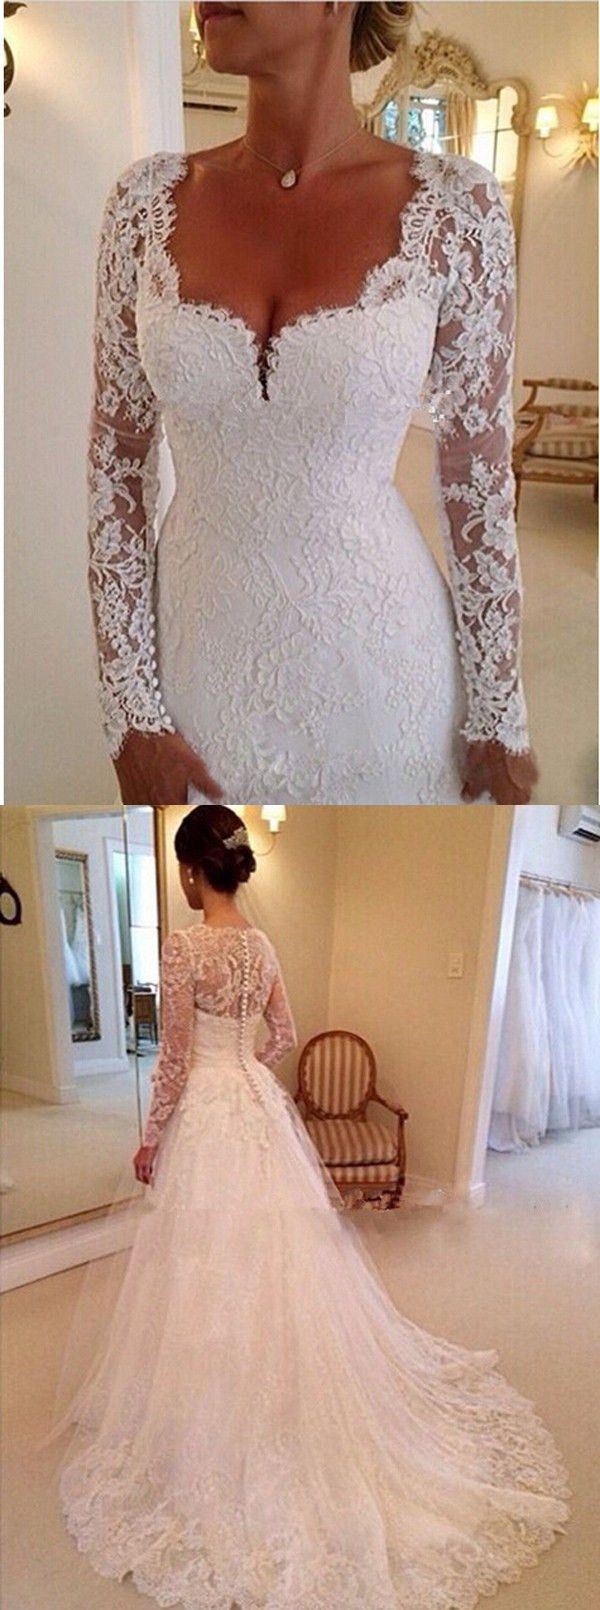 wedding dresses, long sleeves wedding dresses with court train.